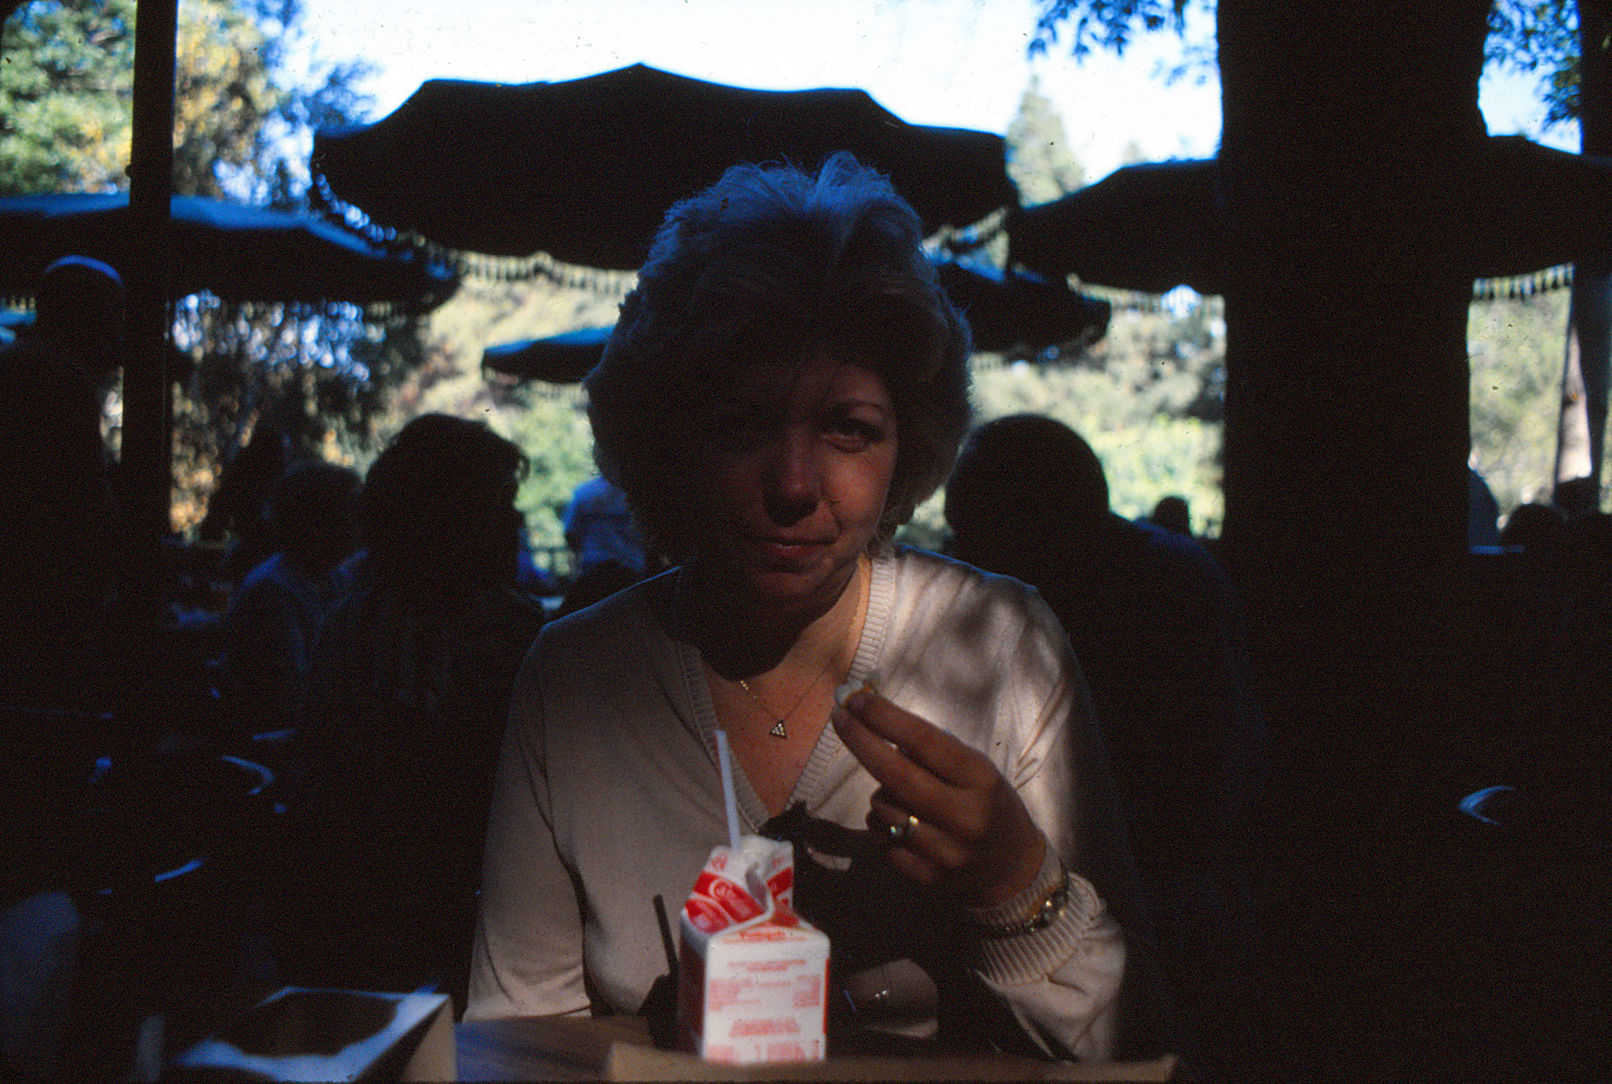 Joan at Disneyland in the late 1970s. Notice she's drinking milk!